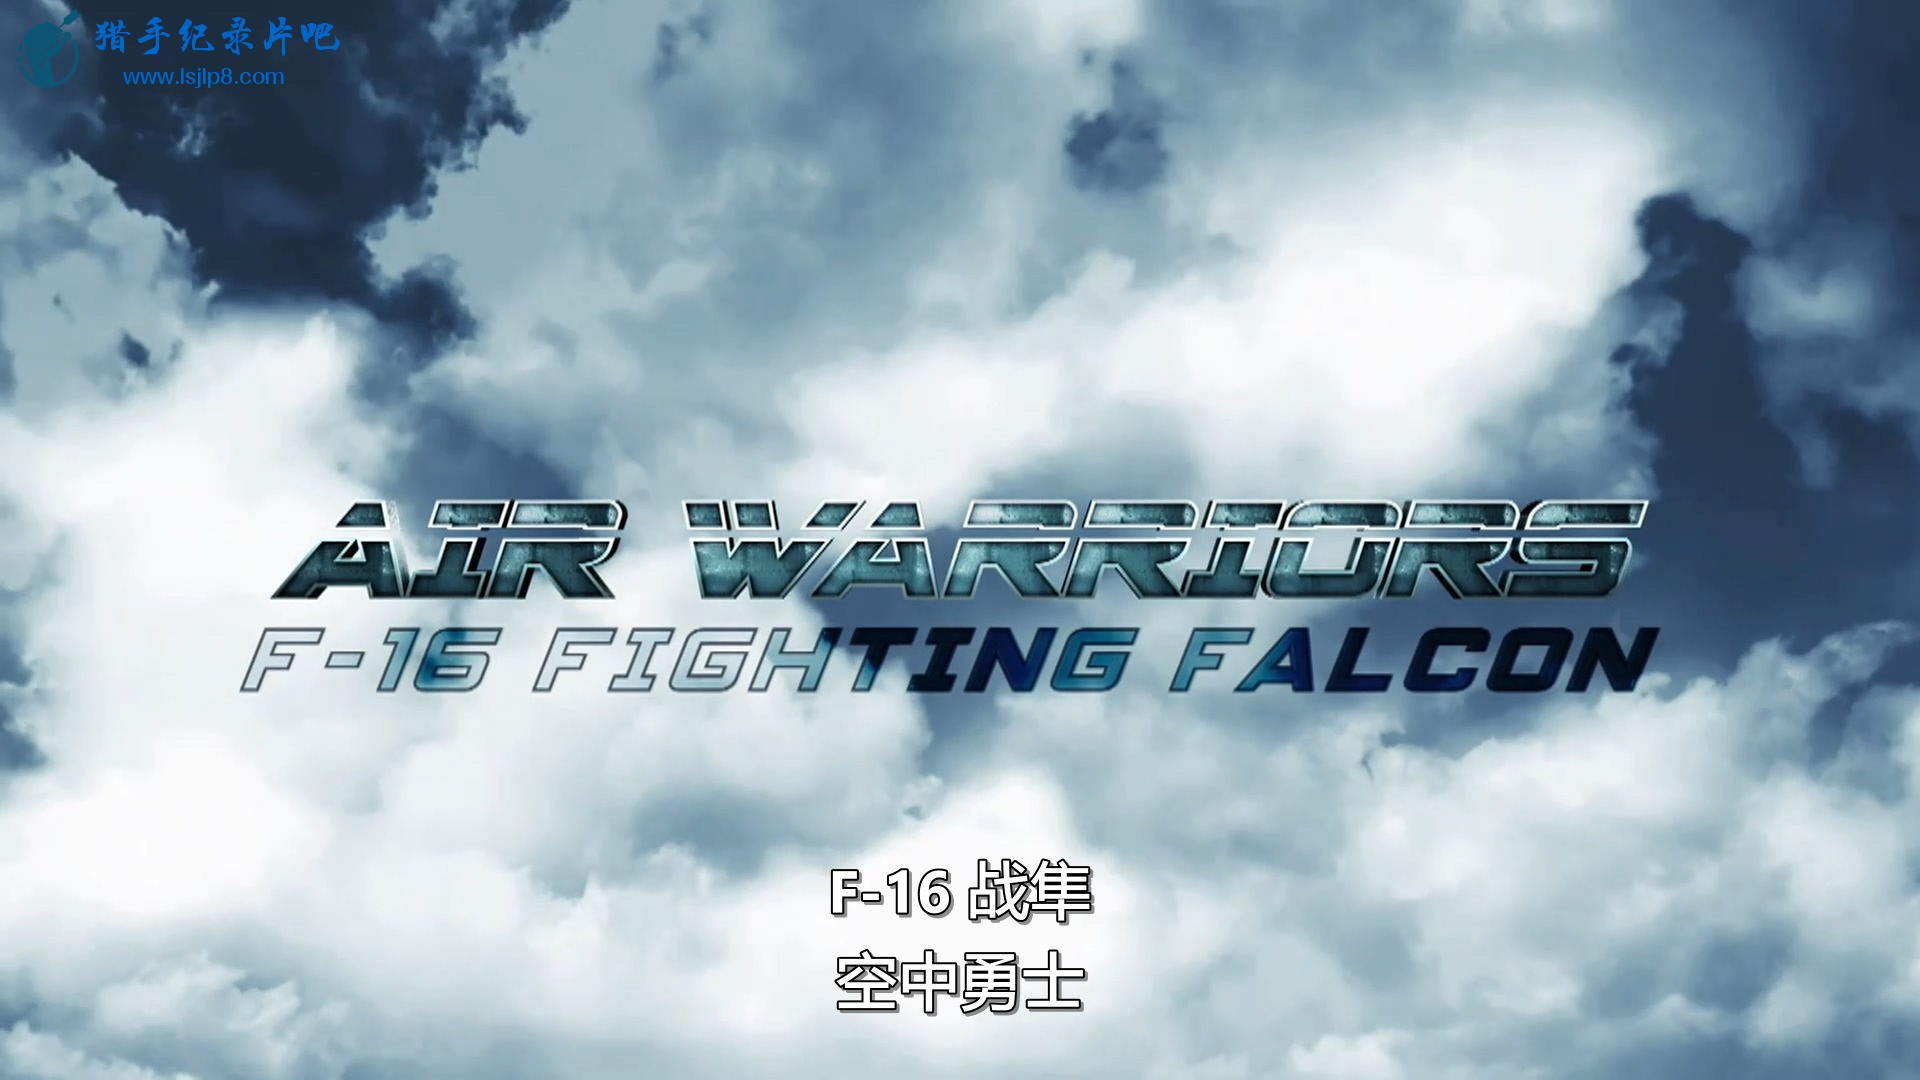 air.warriors.s04e01.f-16.1080p.web.h264-underbelly.mkv_20200707_152116.513_看图王.jpg